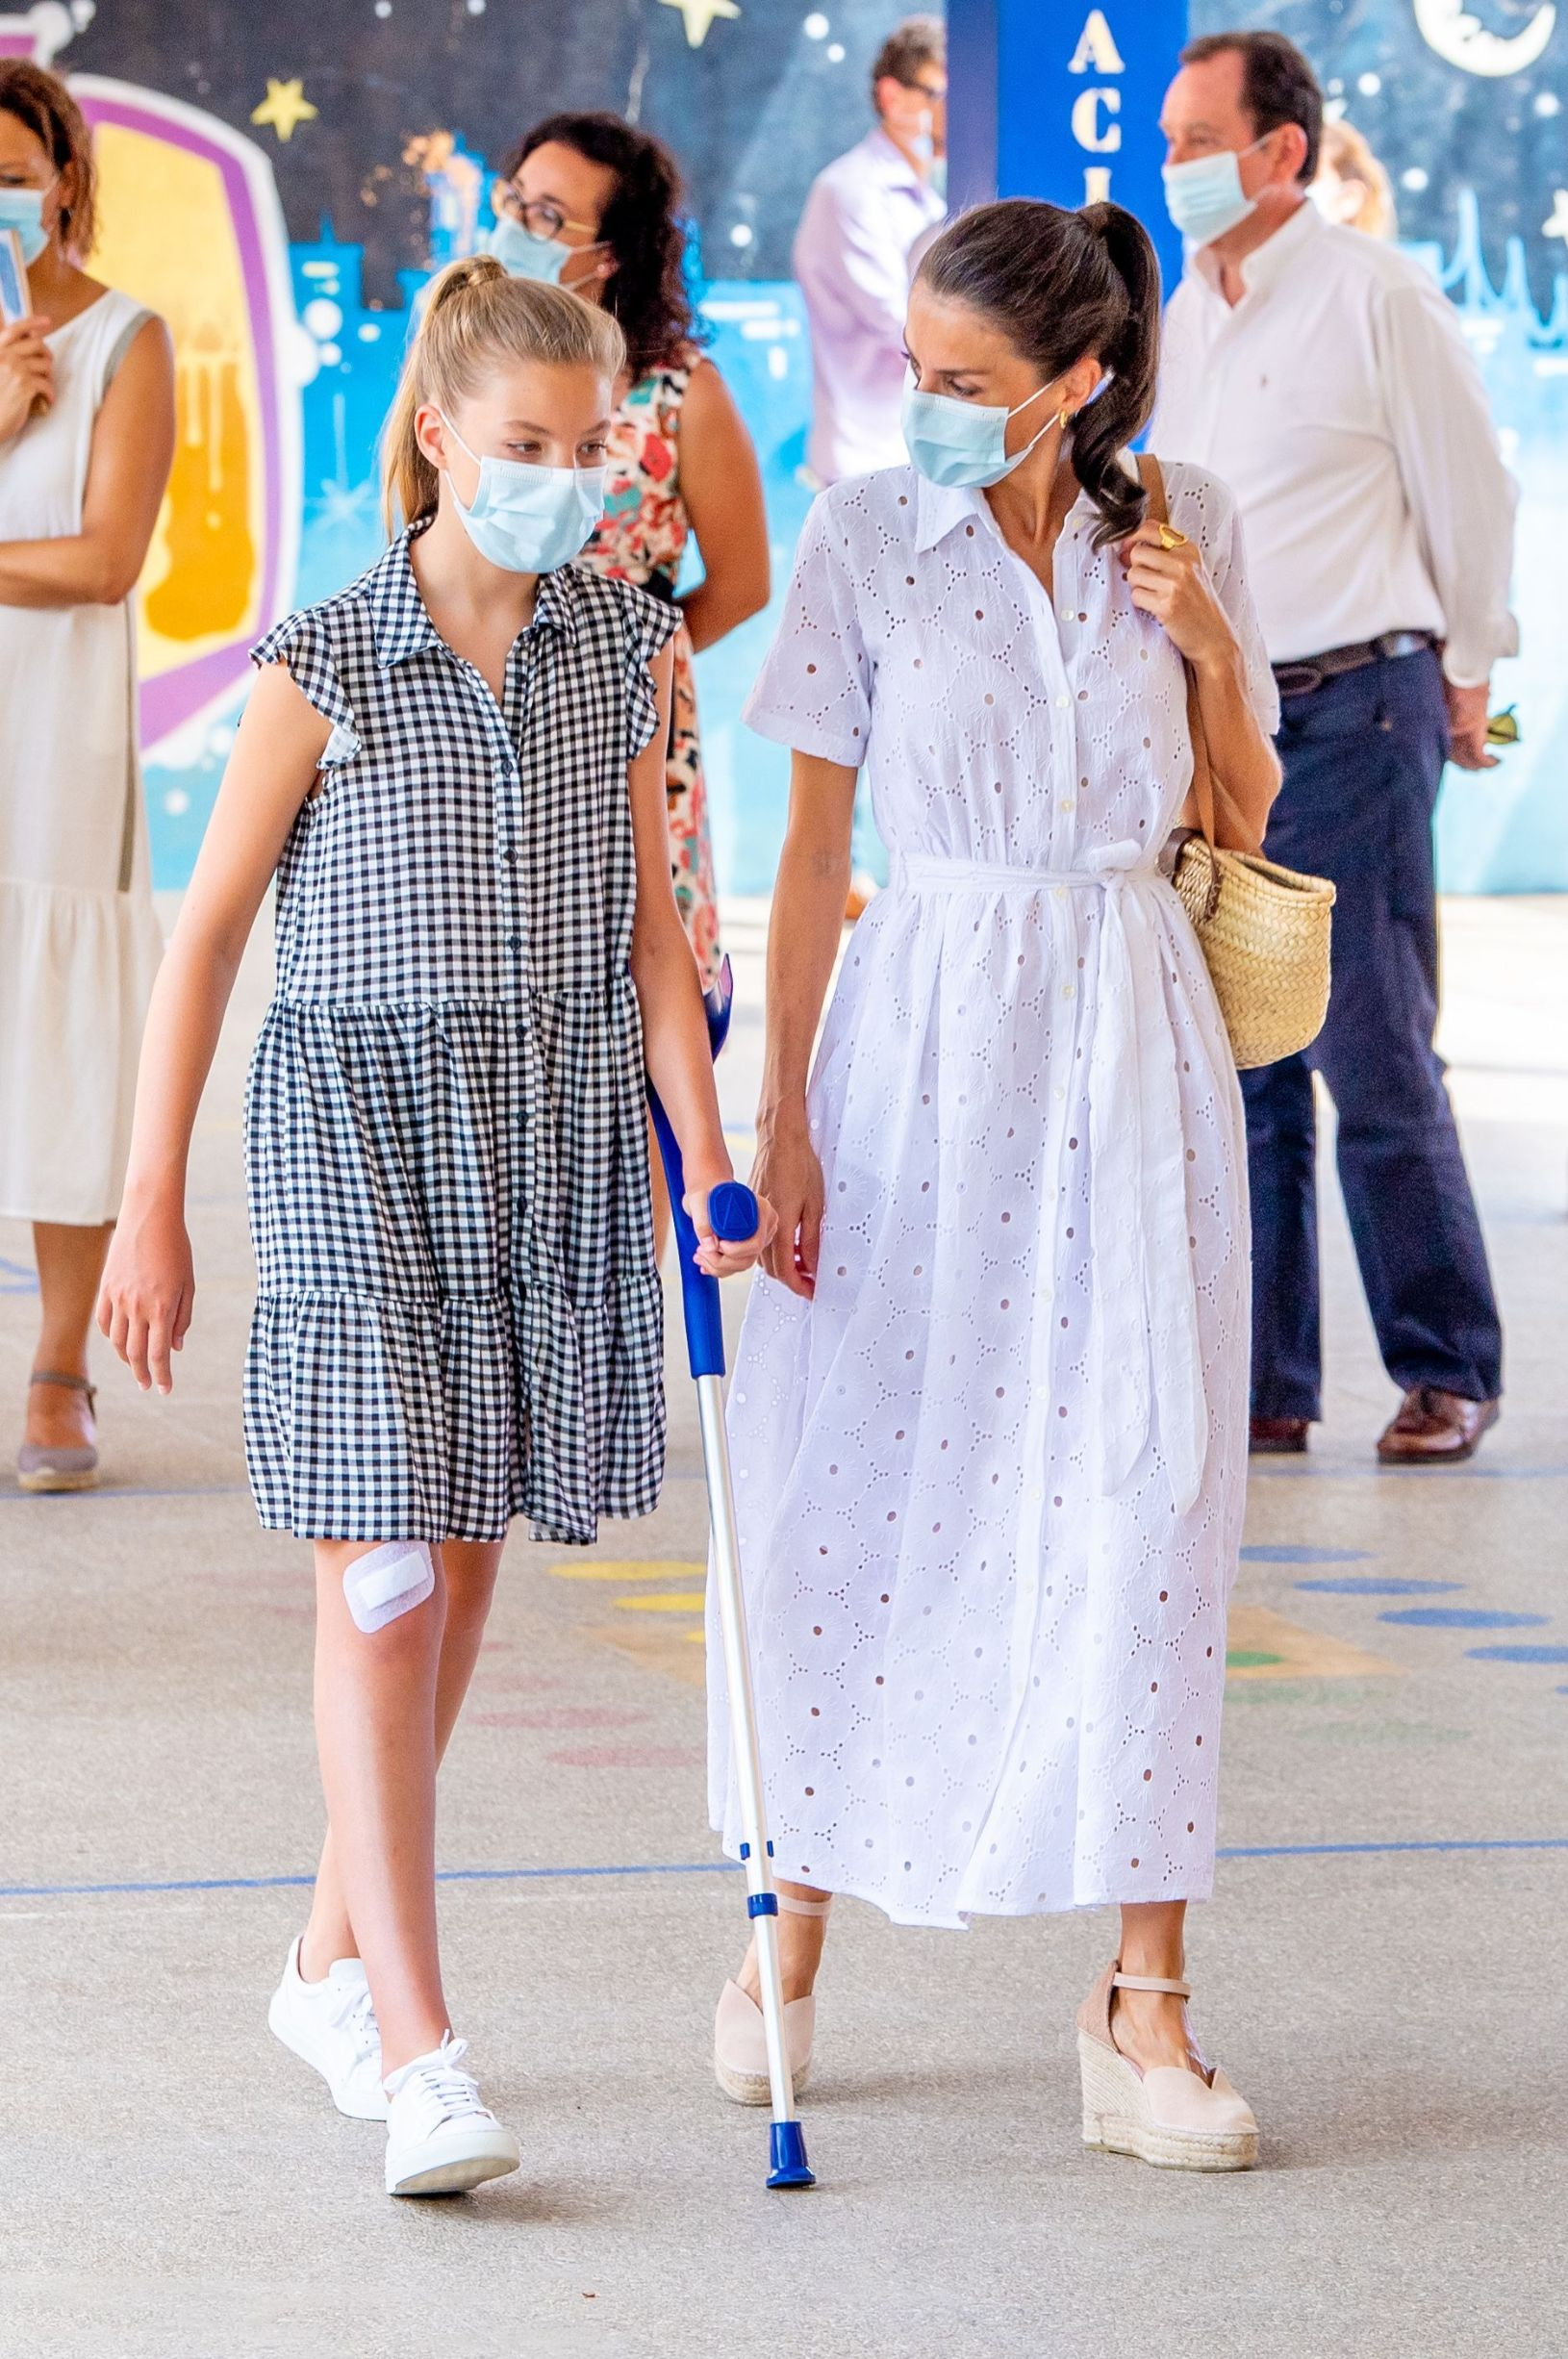 Queen Letizia and Infanta Sofia on crutches due to an injured knee during a visit to Centro Socioeducativo Naum at Son Roca, Mallorca, Spain. Spanish Royals visit to Naum Socio-educational Center, Palma, Balearic Islands, Spain - 11 Aug 2020,Image: 551625456, License: Rights-managed, Restrictions: , Model Release: no, Credit line: - / Shutterstock Editorial / Profimedia